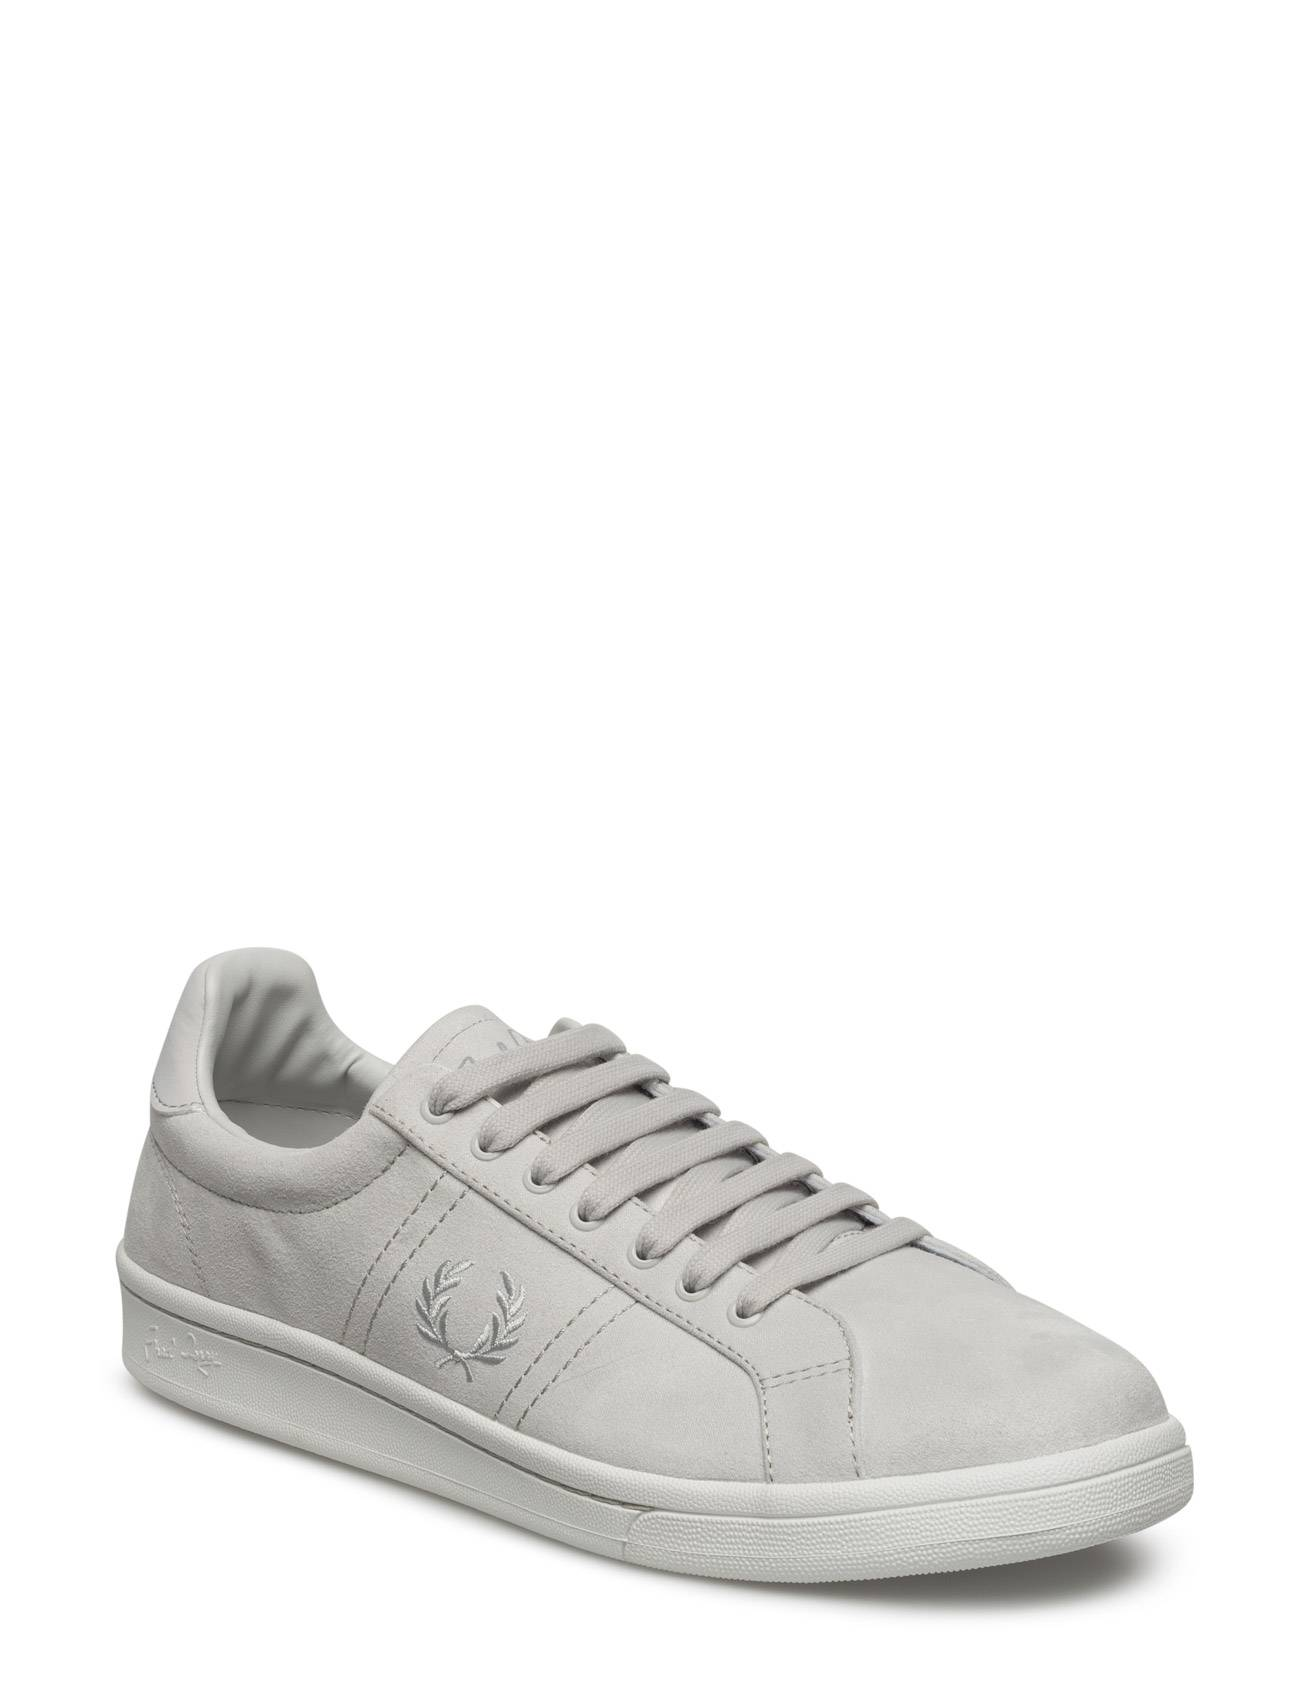 Fred Perry B721 Brushed Cotton